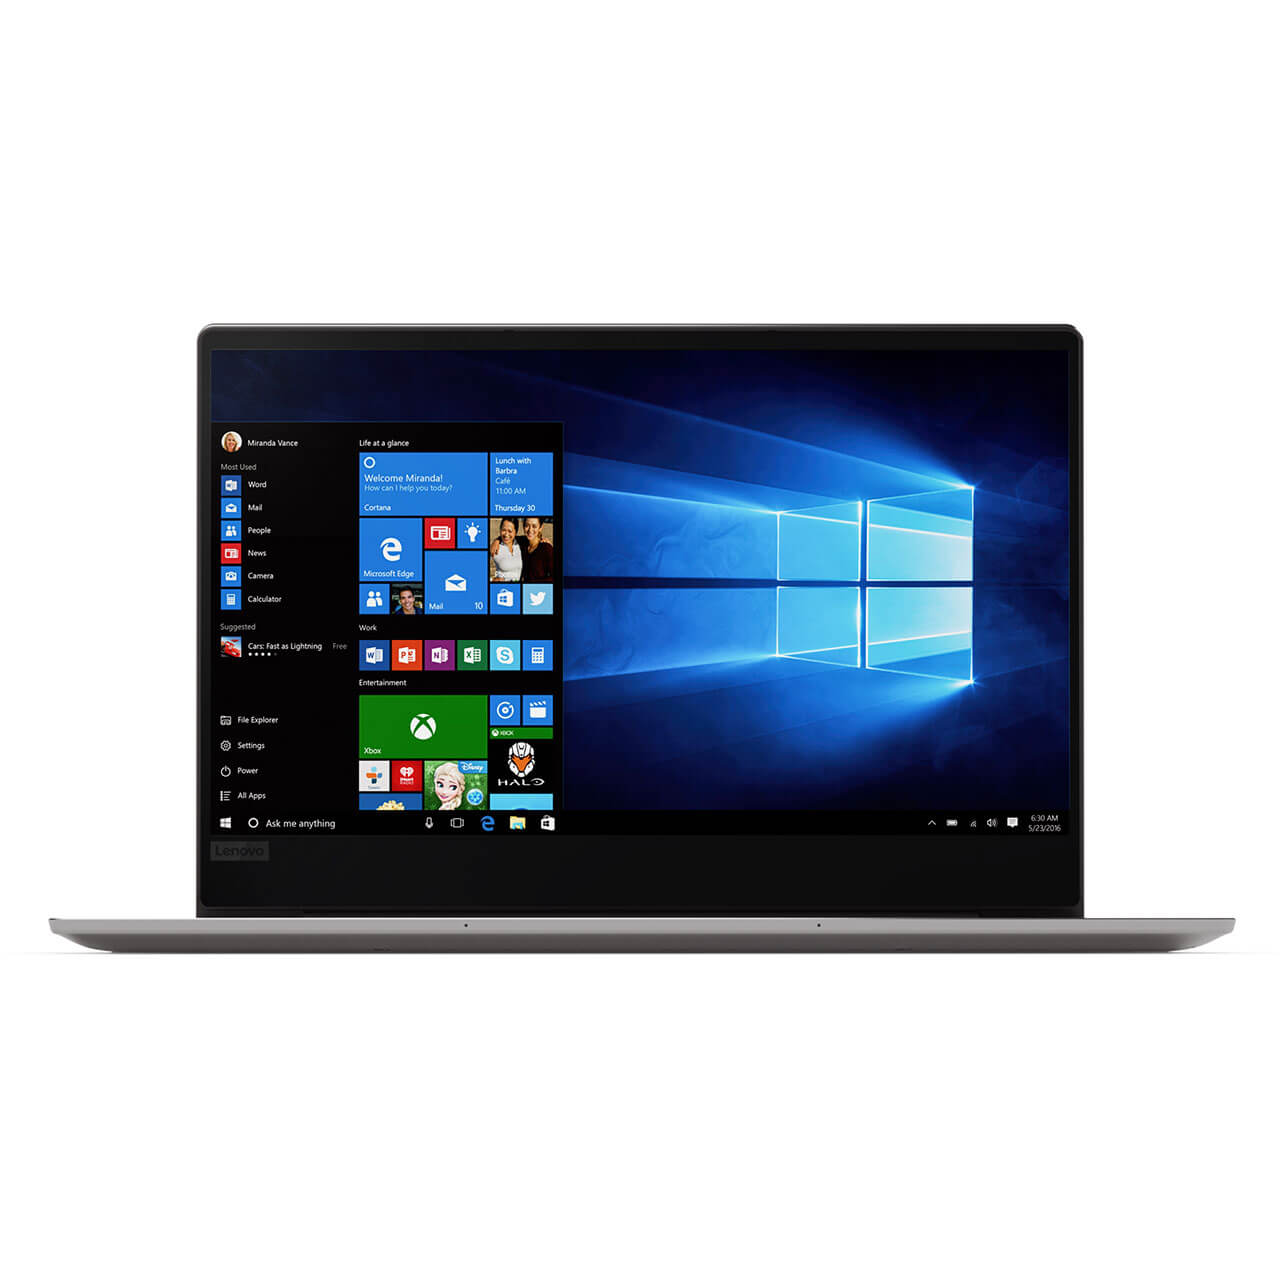 lenovo ideapad 700 usb drivers